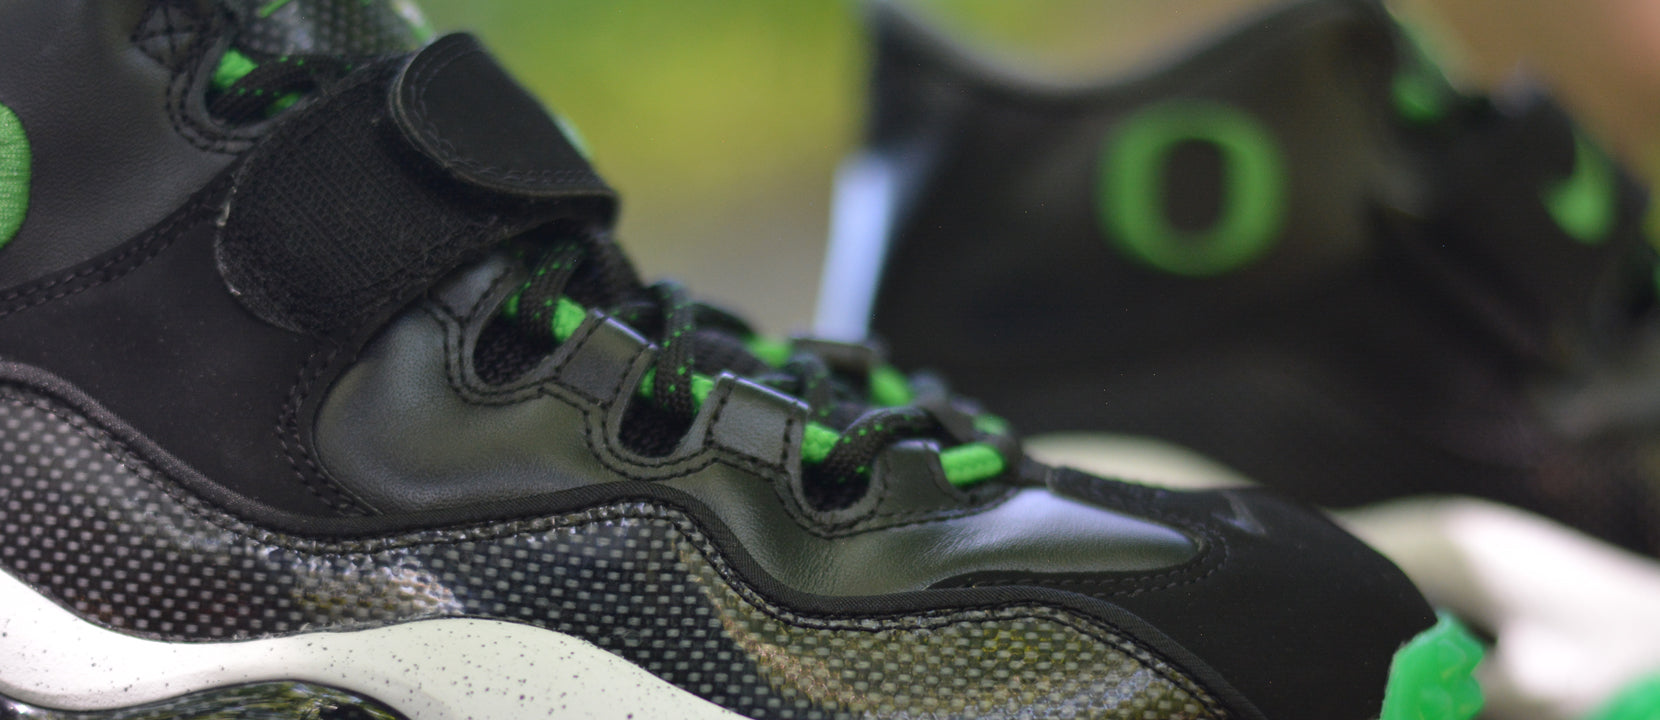 """bd33f30dc3 These latest Nike Air Zoom Turf """"Oregon Ducks"""" had been rumored for quite  some time, and thankfully, is now a reality. The cleanest turf joints we've  seen ..."""